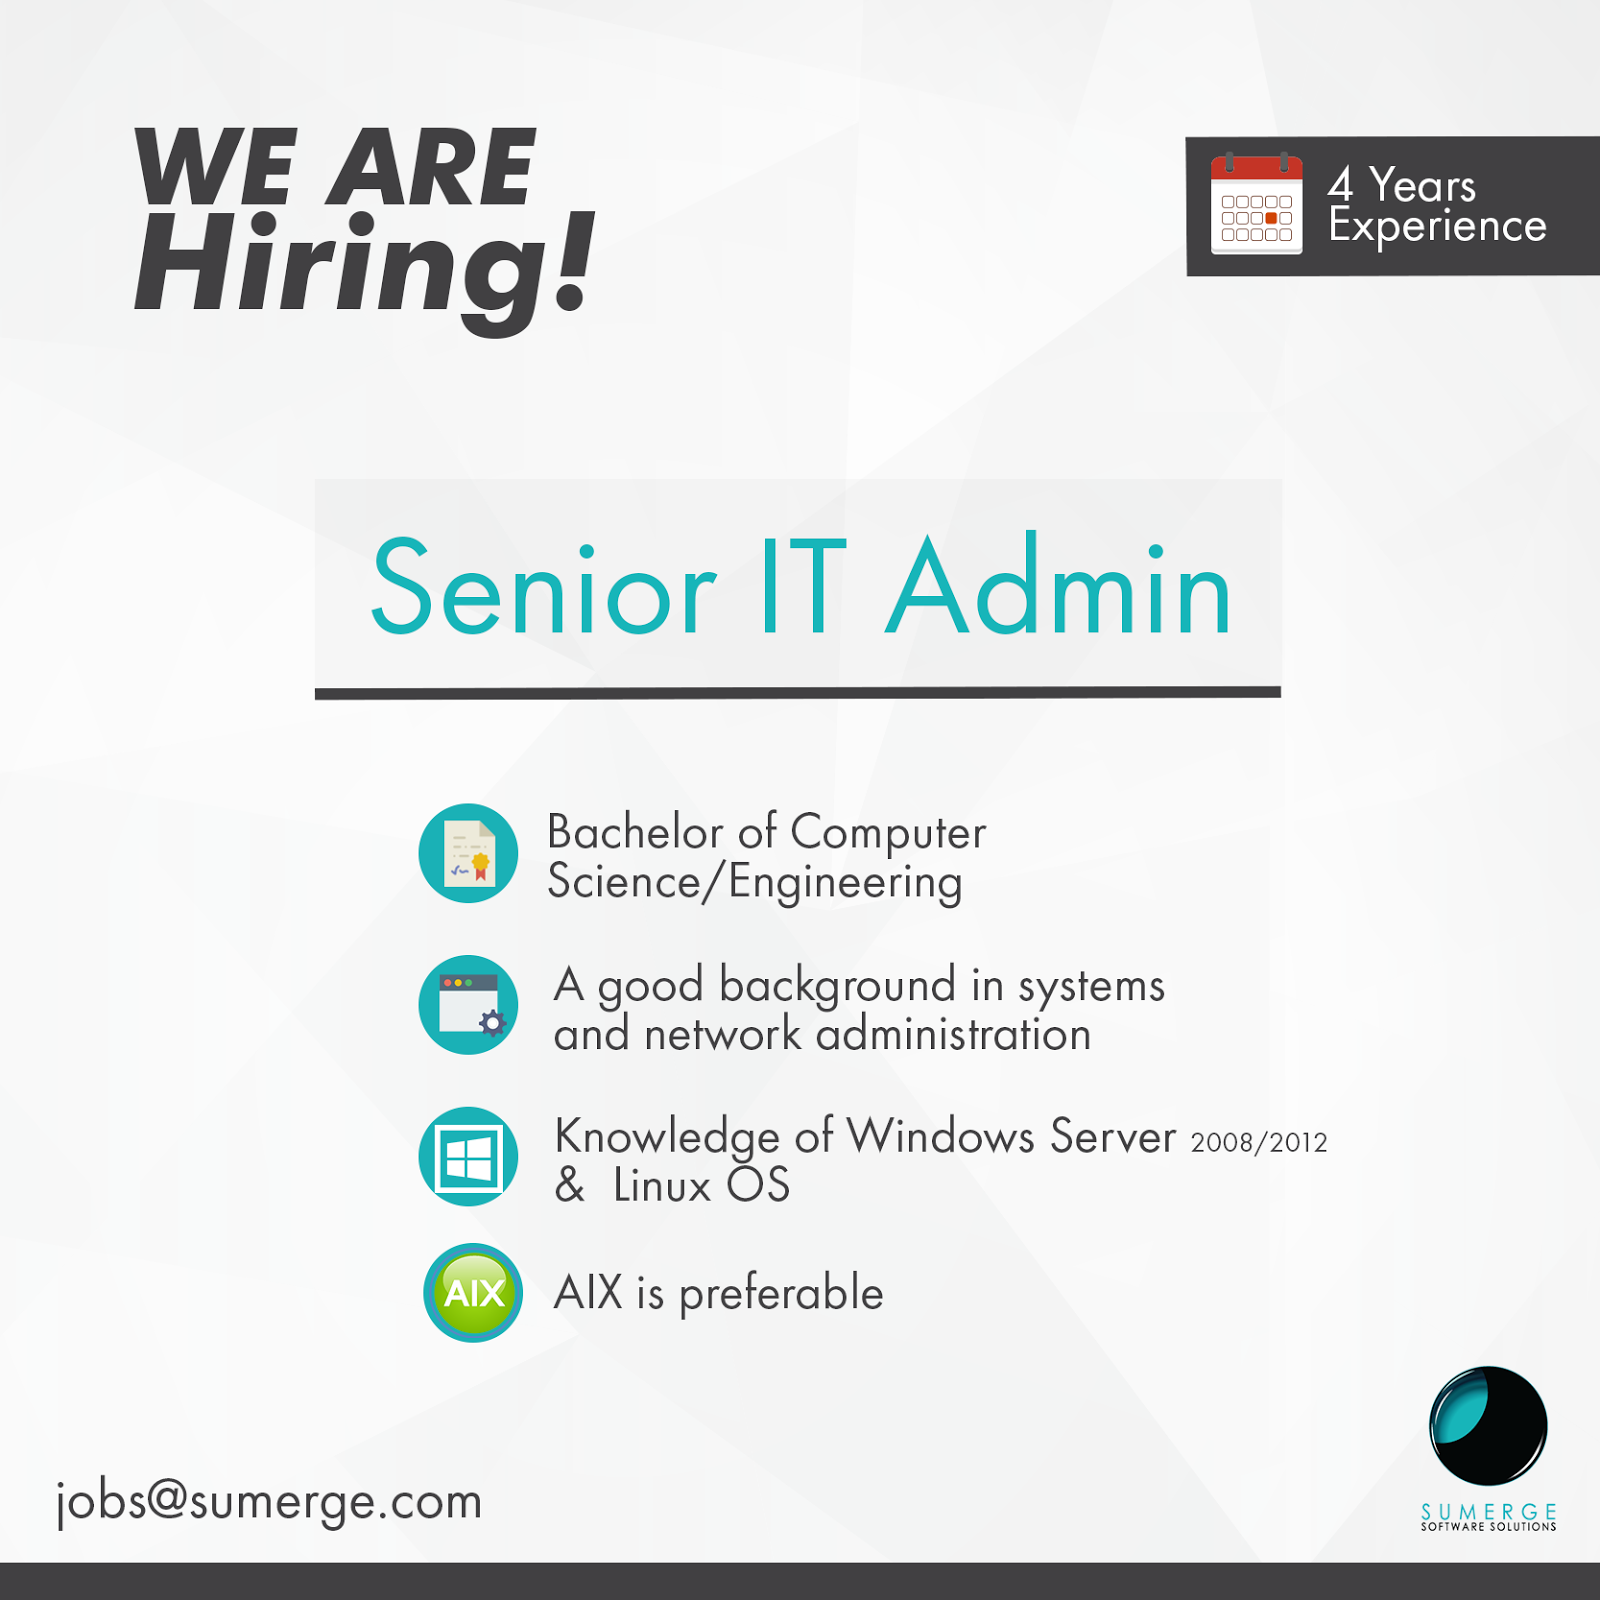 latest jobs and vacancies currently they are looking for networking system admin jobs the title senior it admin and the position requirements includes bachelor of computer